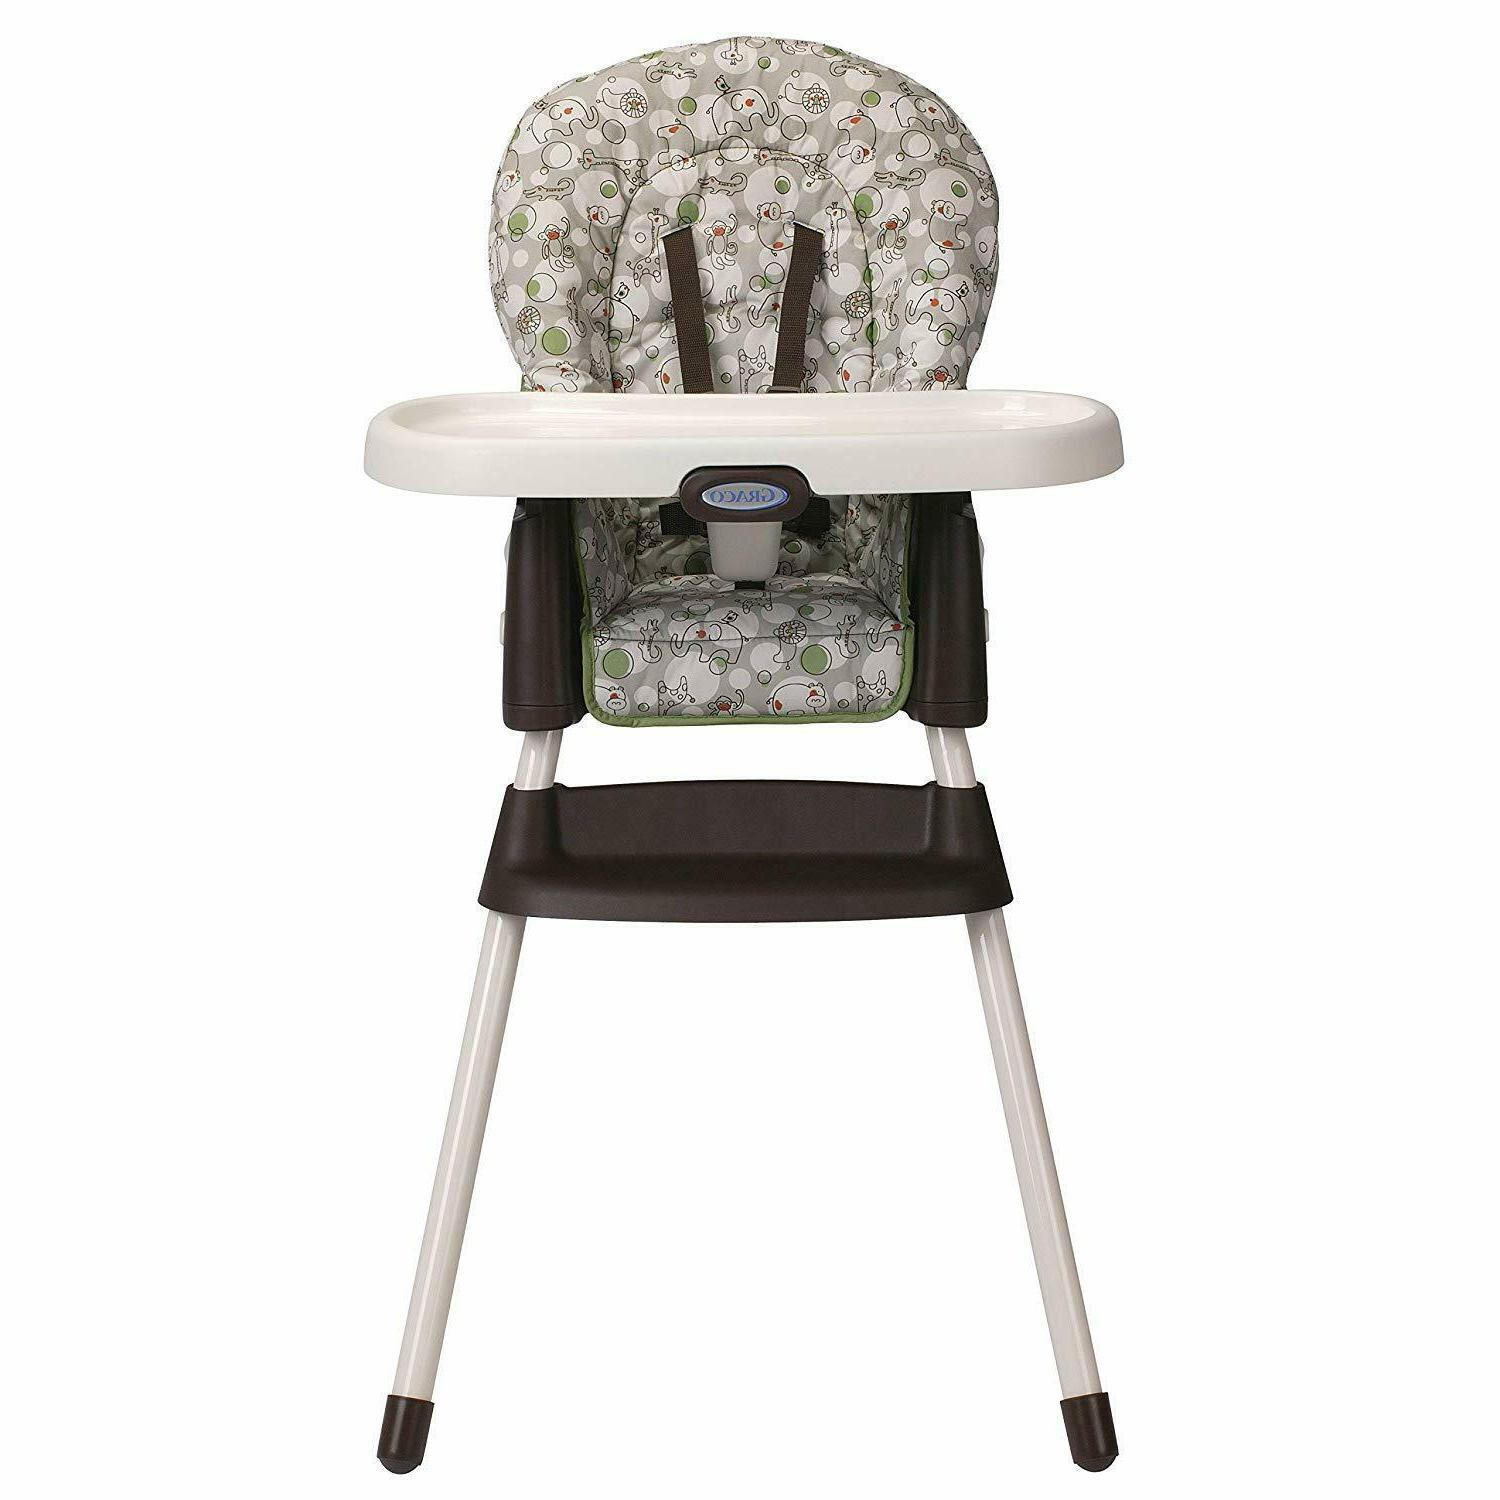 Portable High Chair 3 Position Reclining Washable Seat